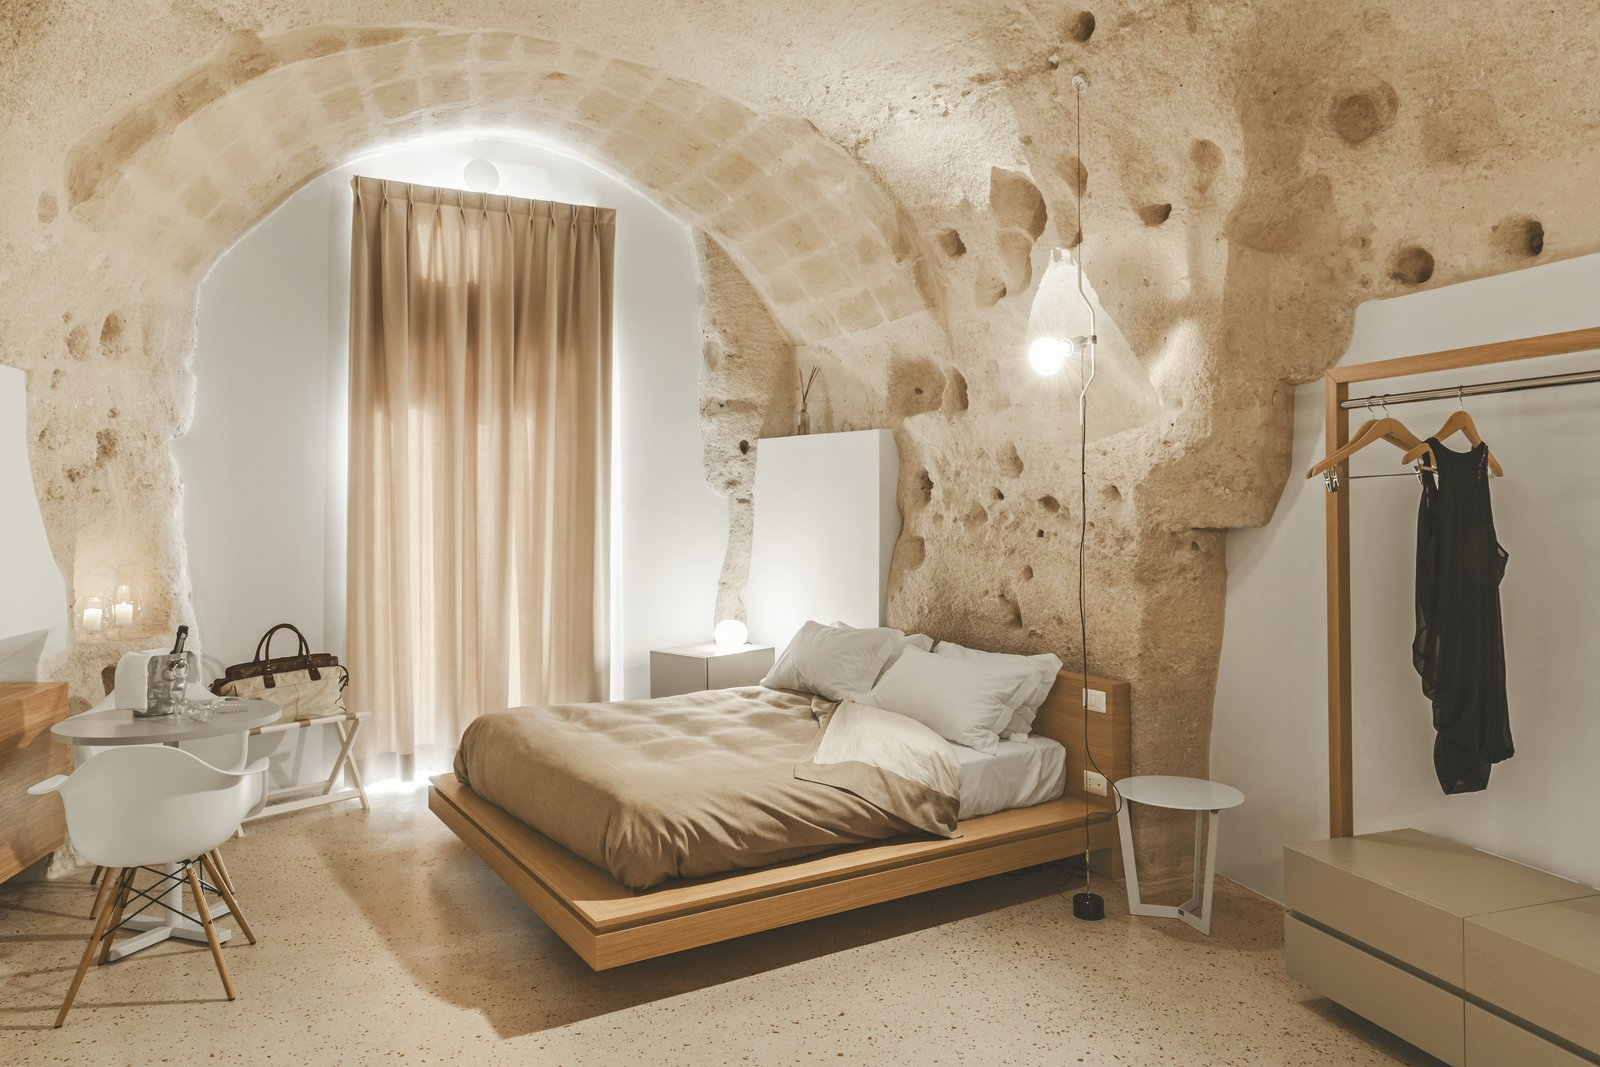 Stay in This Extraordinary Cave Hotel in Southern Italy